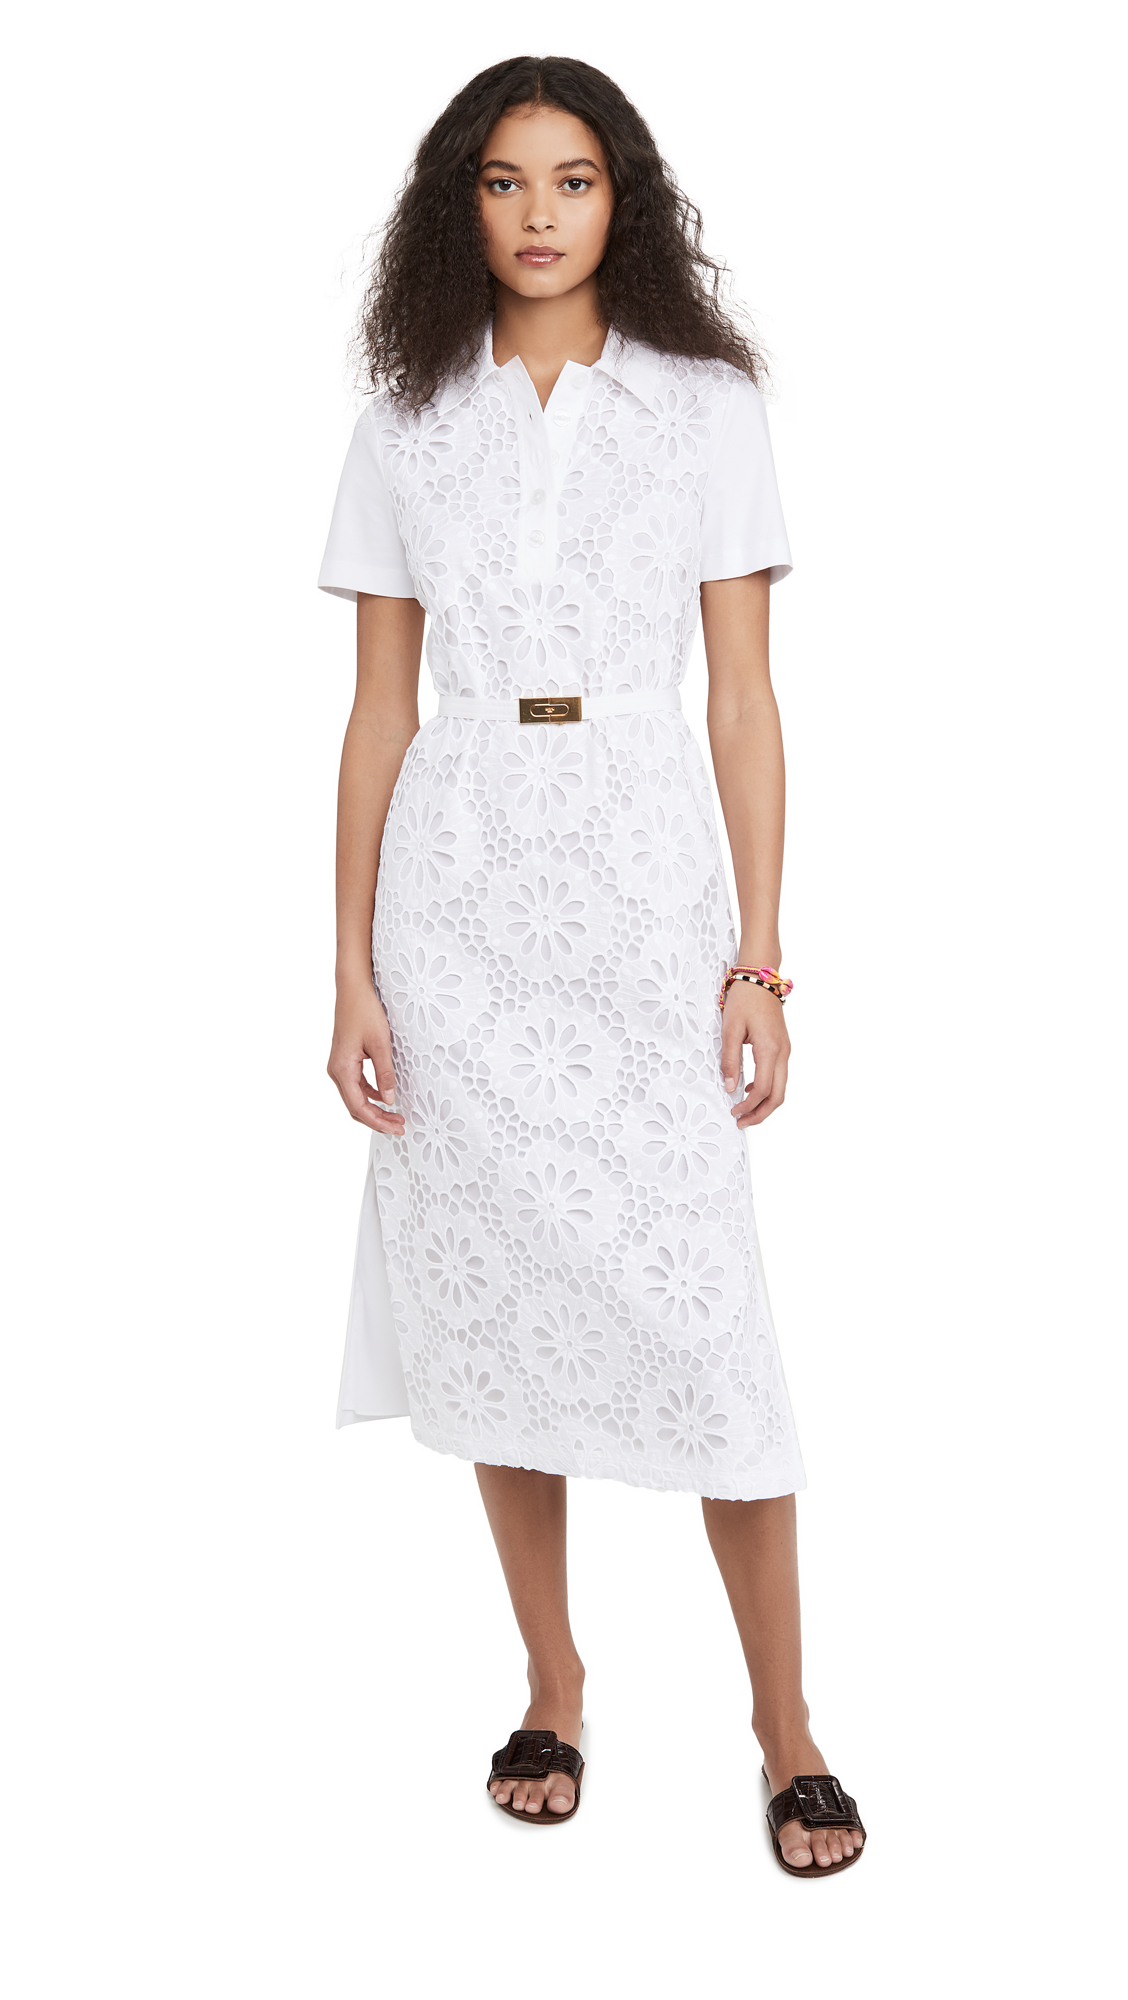 Tory Burch Lace Polo Dress - 30% Off Sale